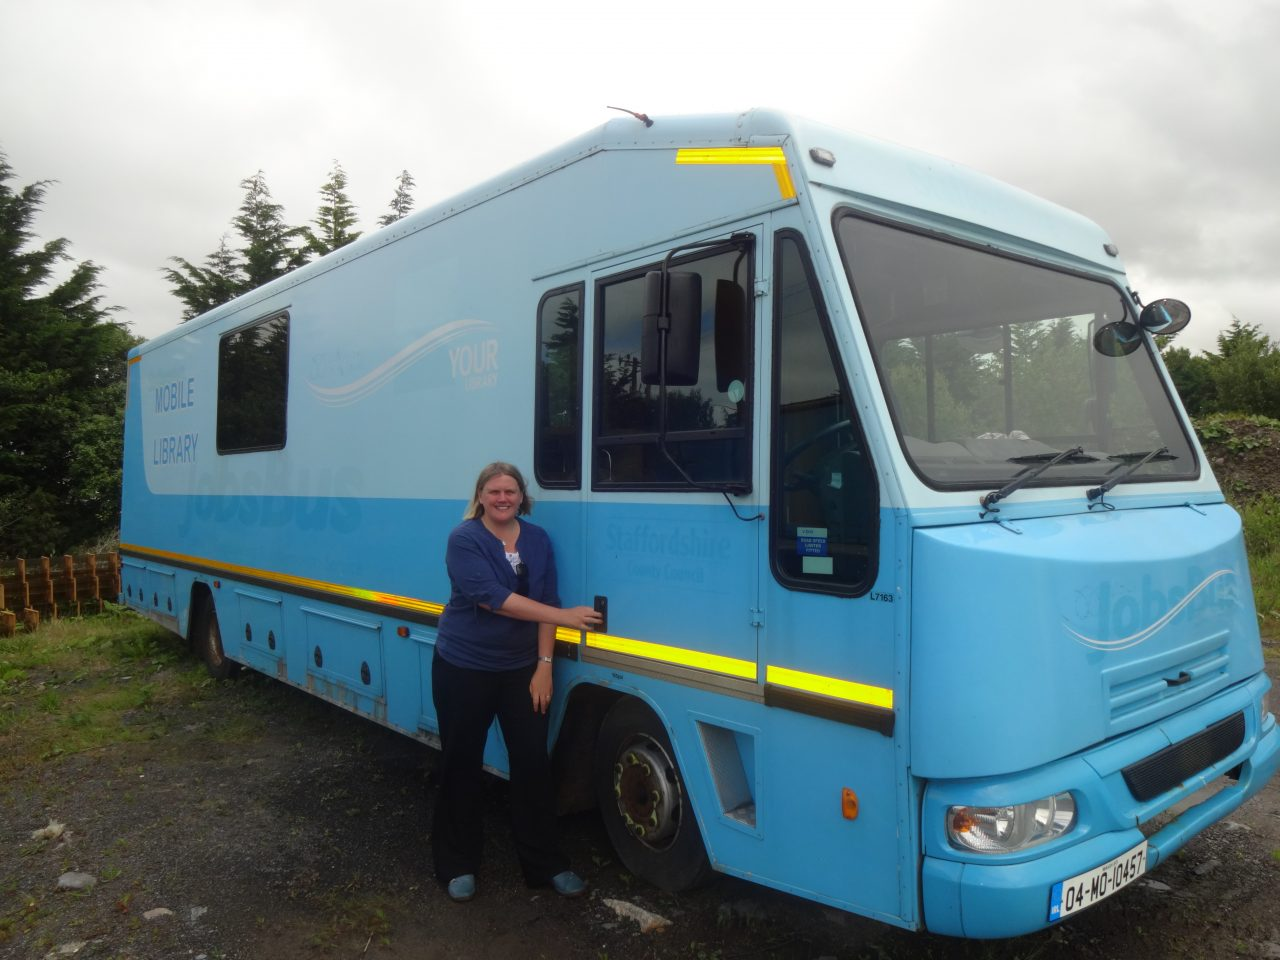 Emma by the Big Blue Bus before it's been refurbished